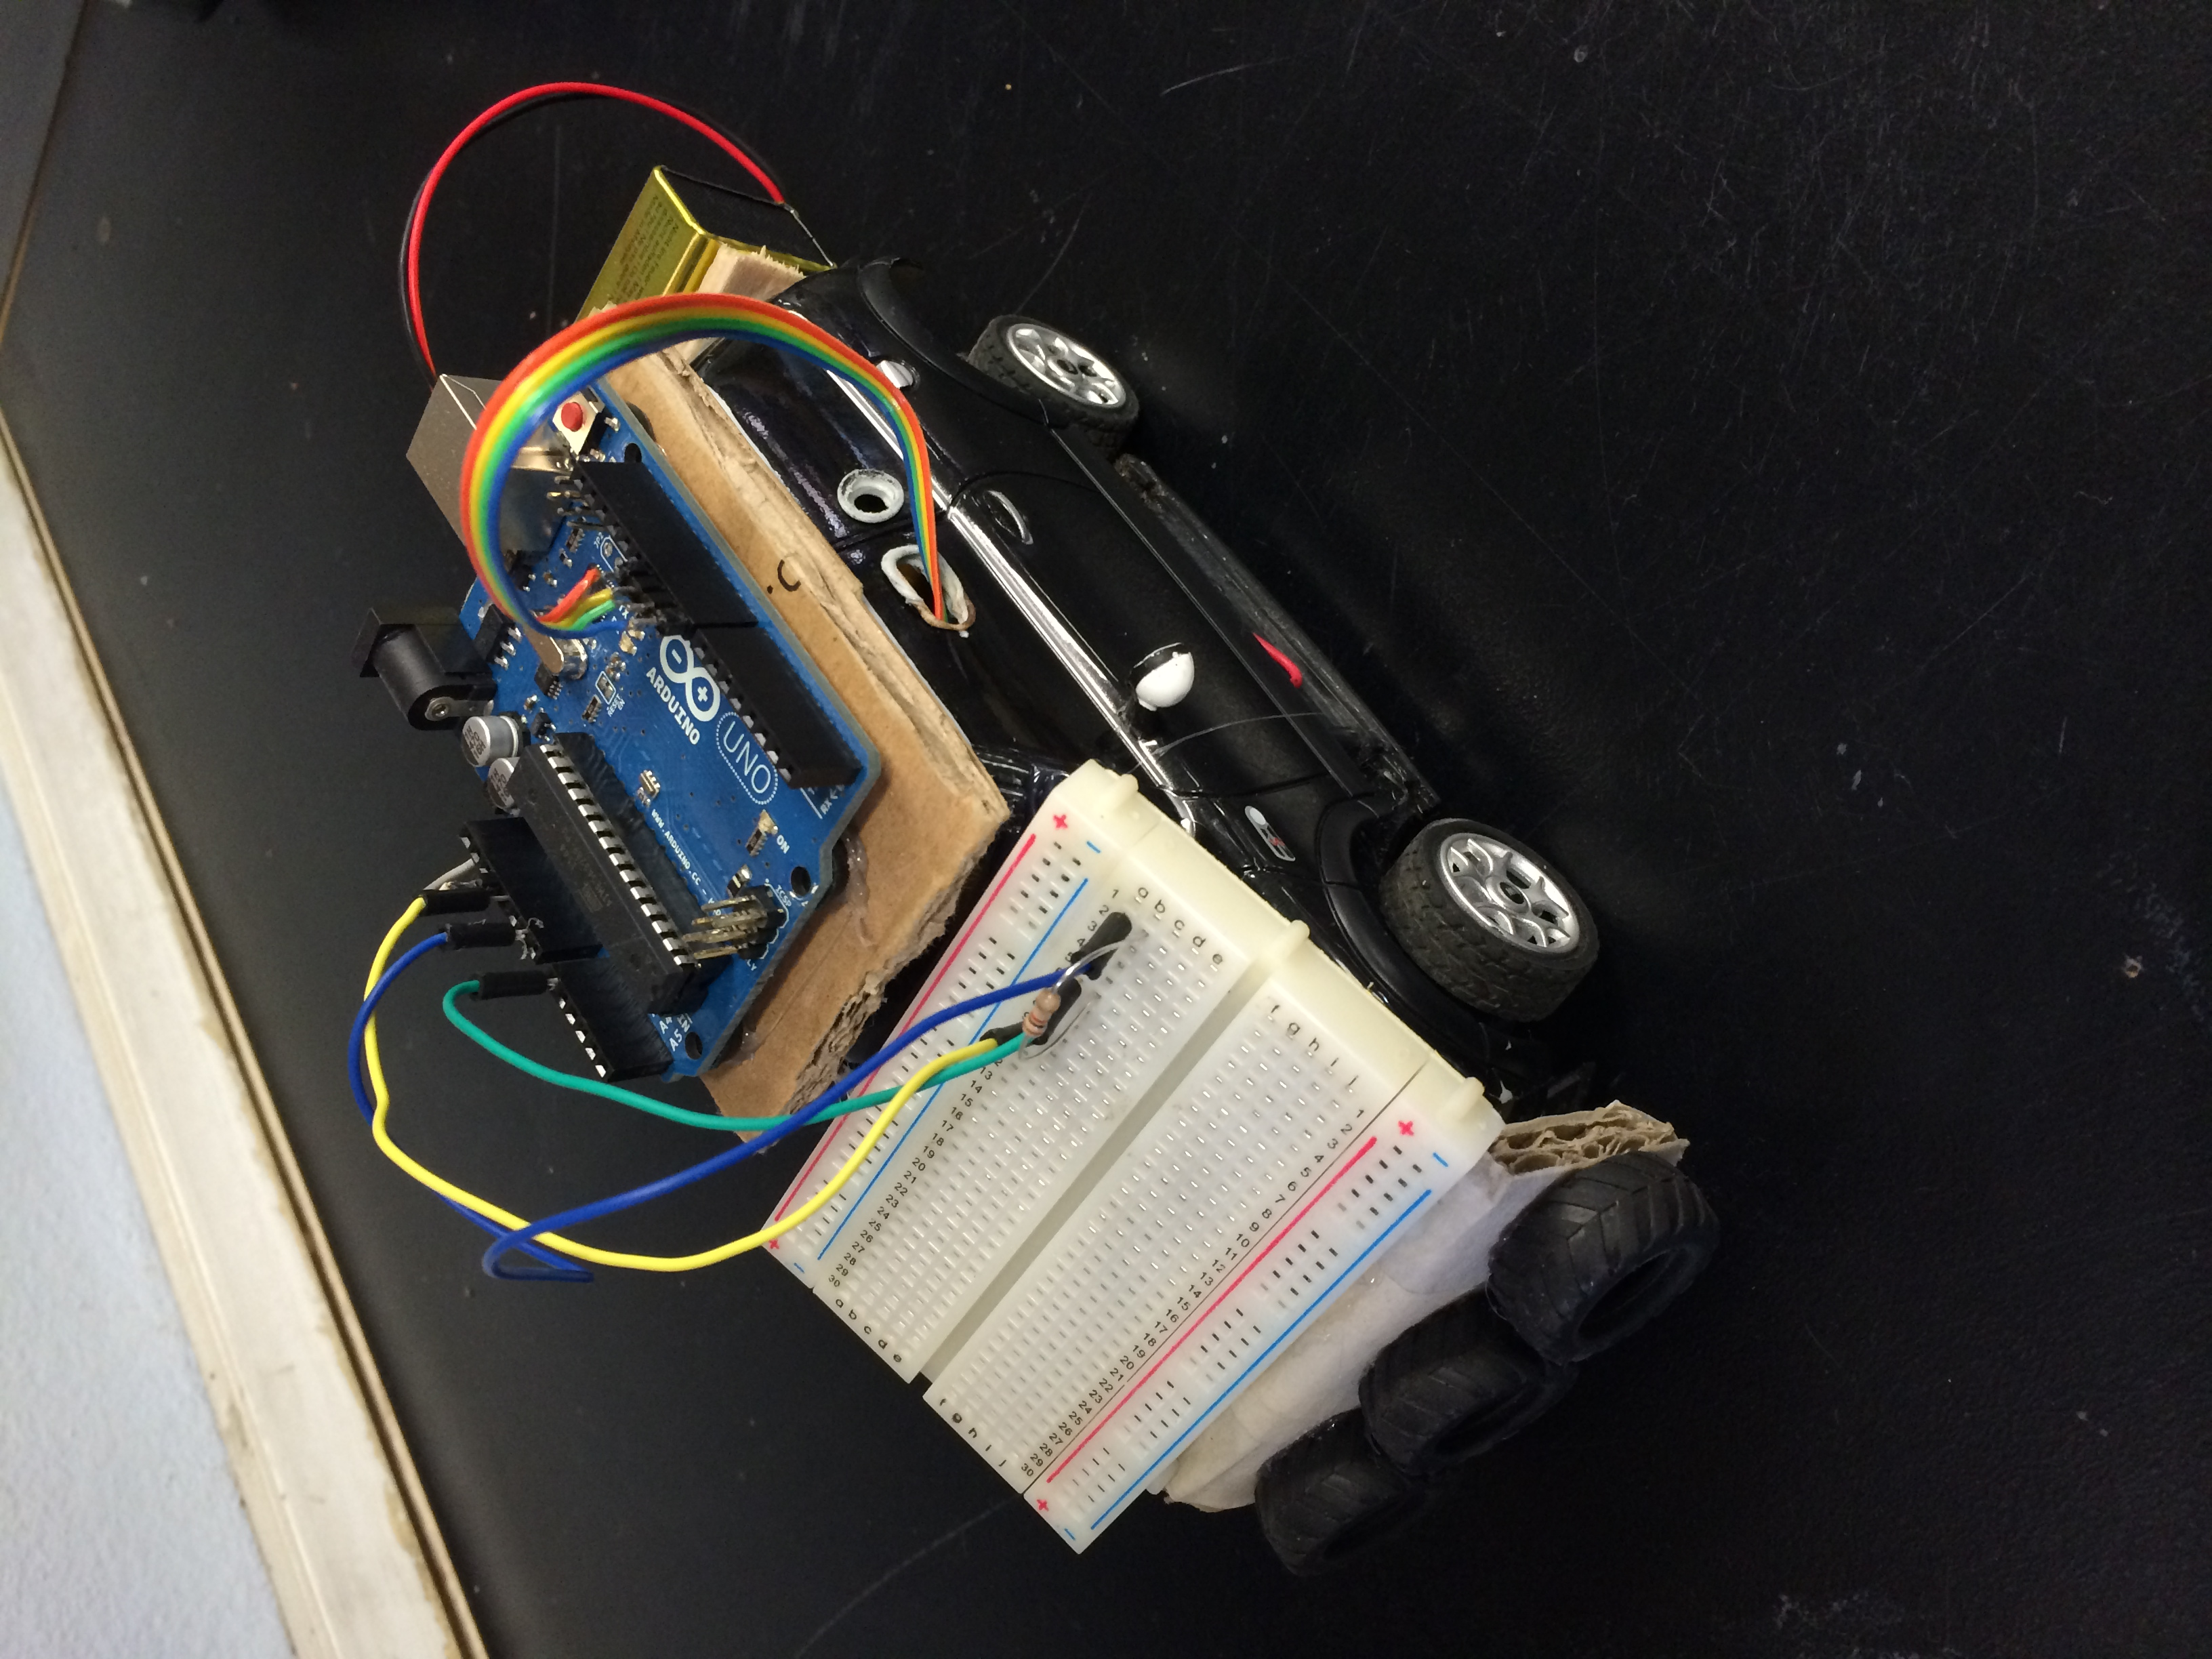 Picture of DIY RC Car Controlled With Arduino